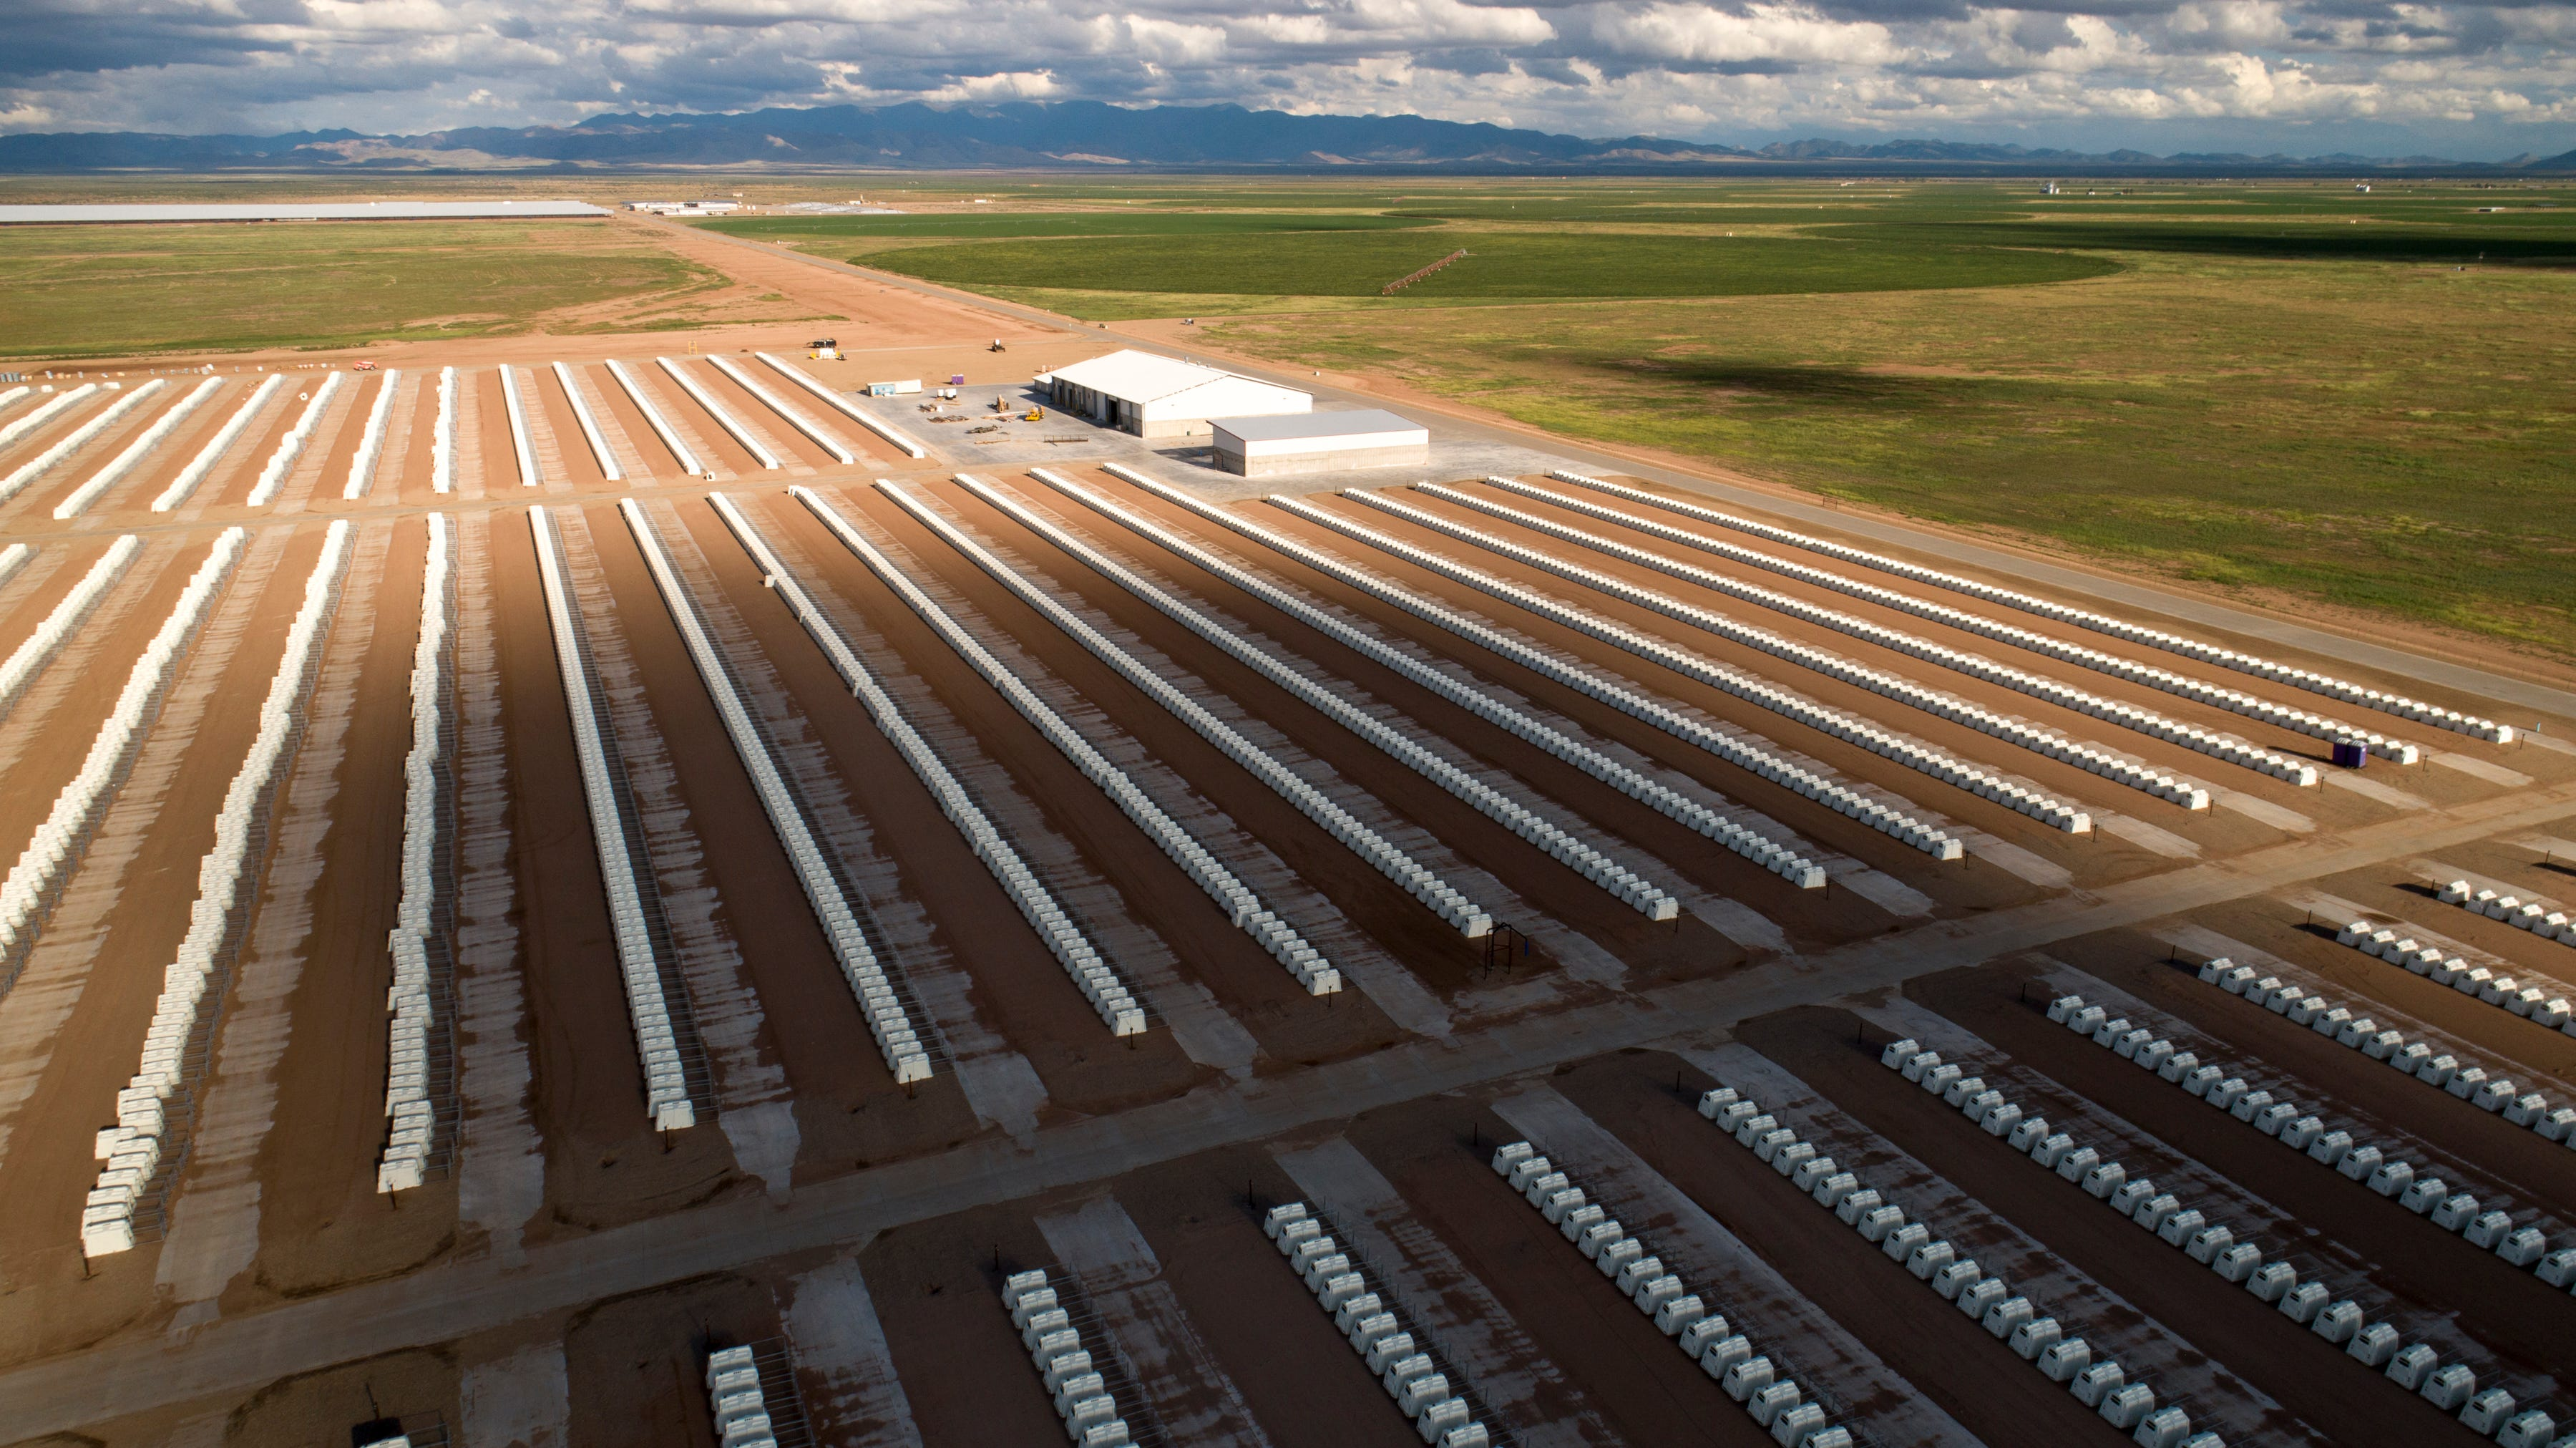 """Thousands of plastic shelters for calves, called """"calf huts,"""" spread out in rows at the new Turkey Creek Dairy. Riverview grows crops to feed the cattle at its dairies near Willcox, using groundwater to irrigate fields."""